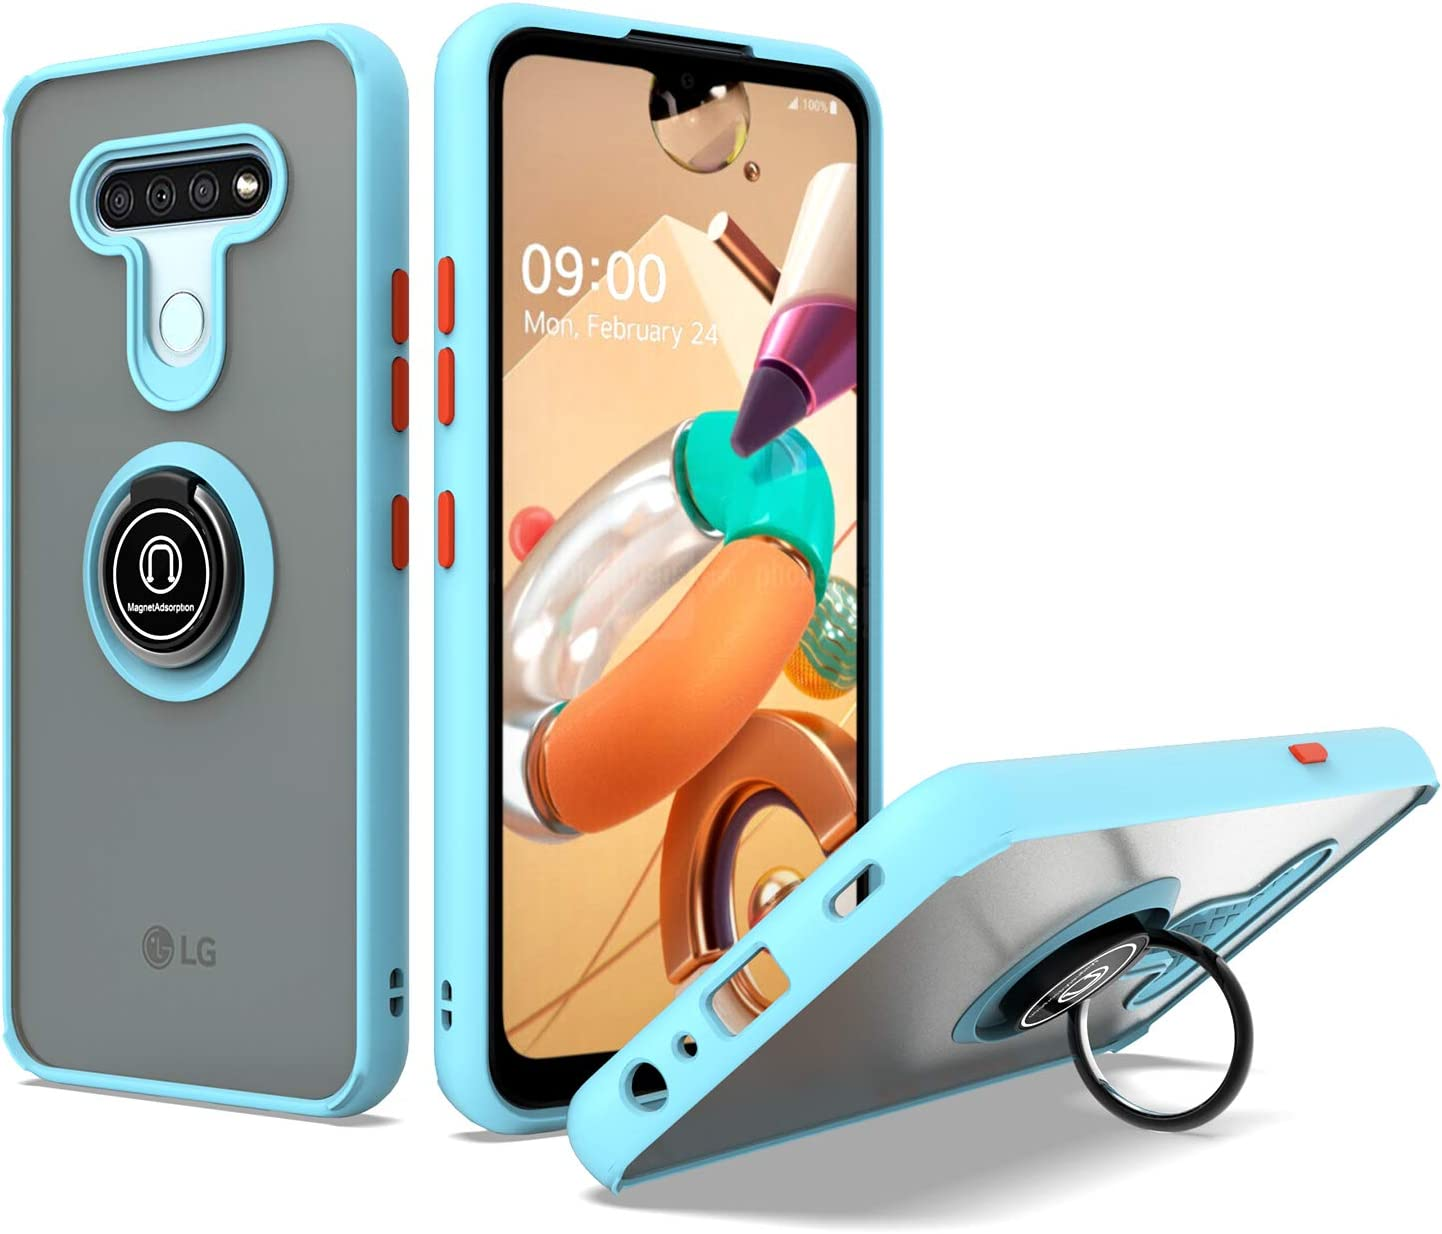 UNC Pro Cell Phone Case for TPU Q51 Chicago Mall Hybrid Max 71% OFF K51 Reflect LG